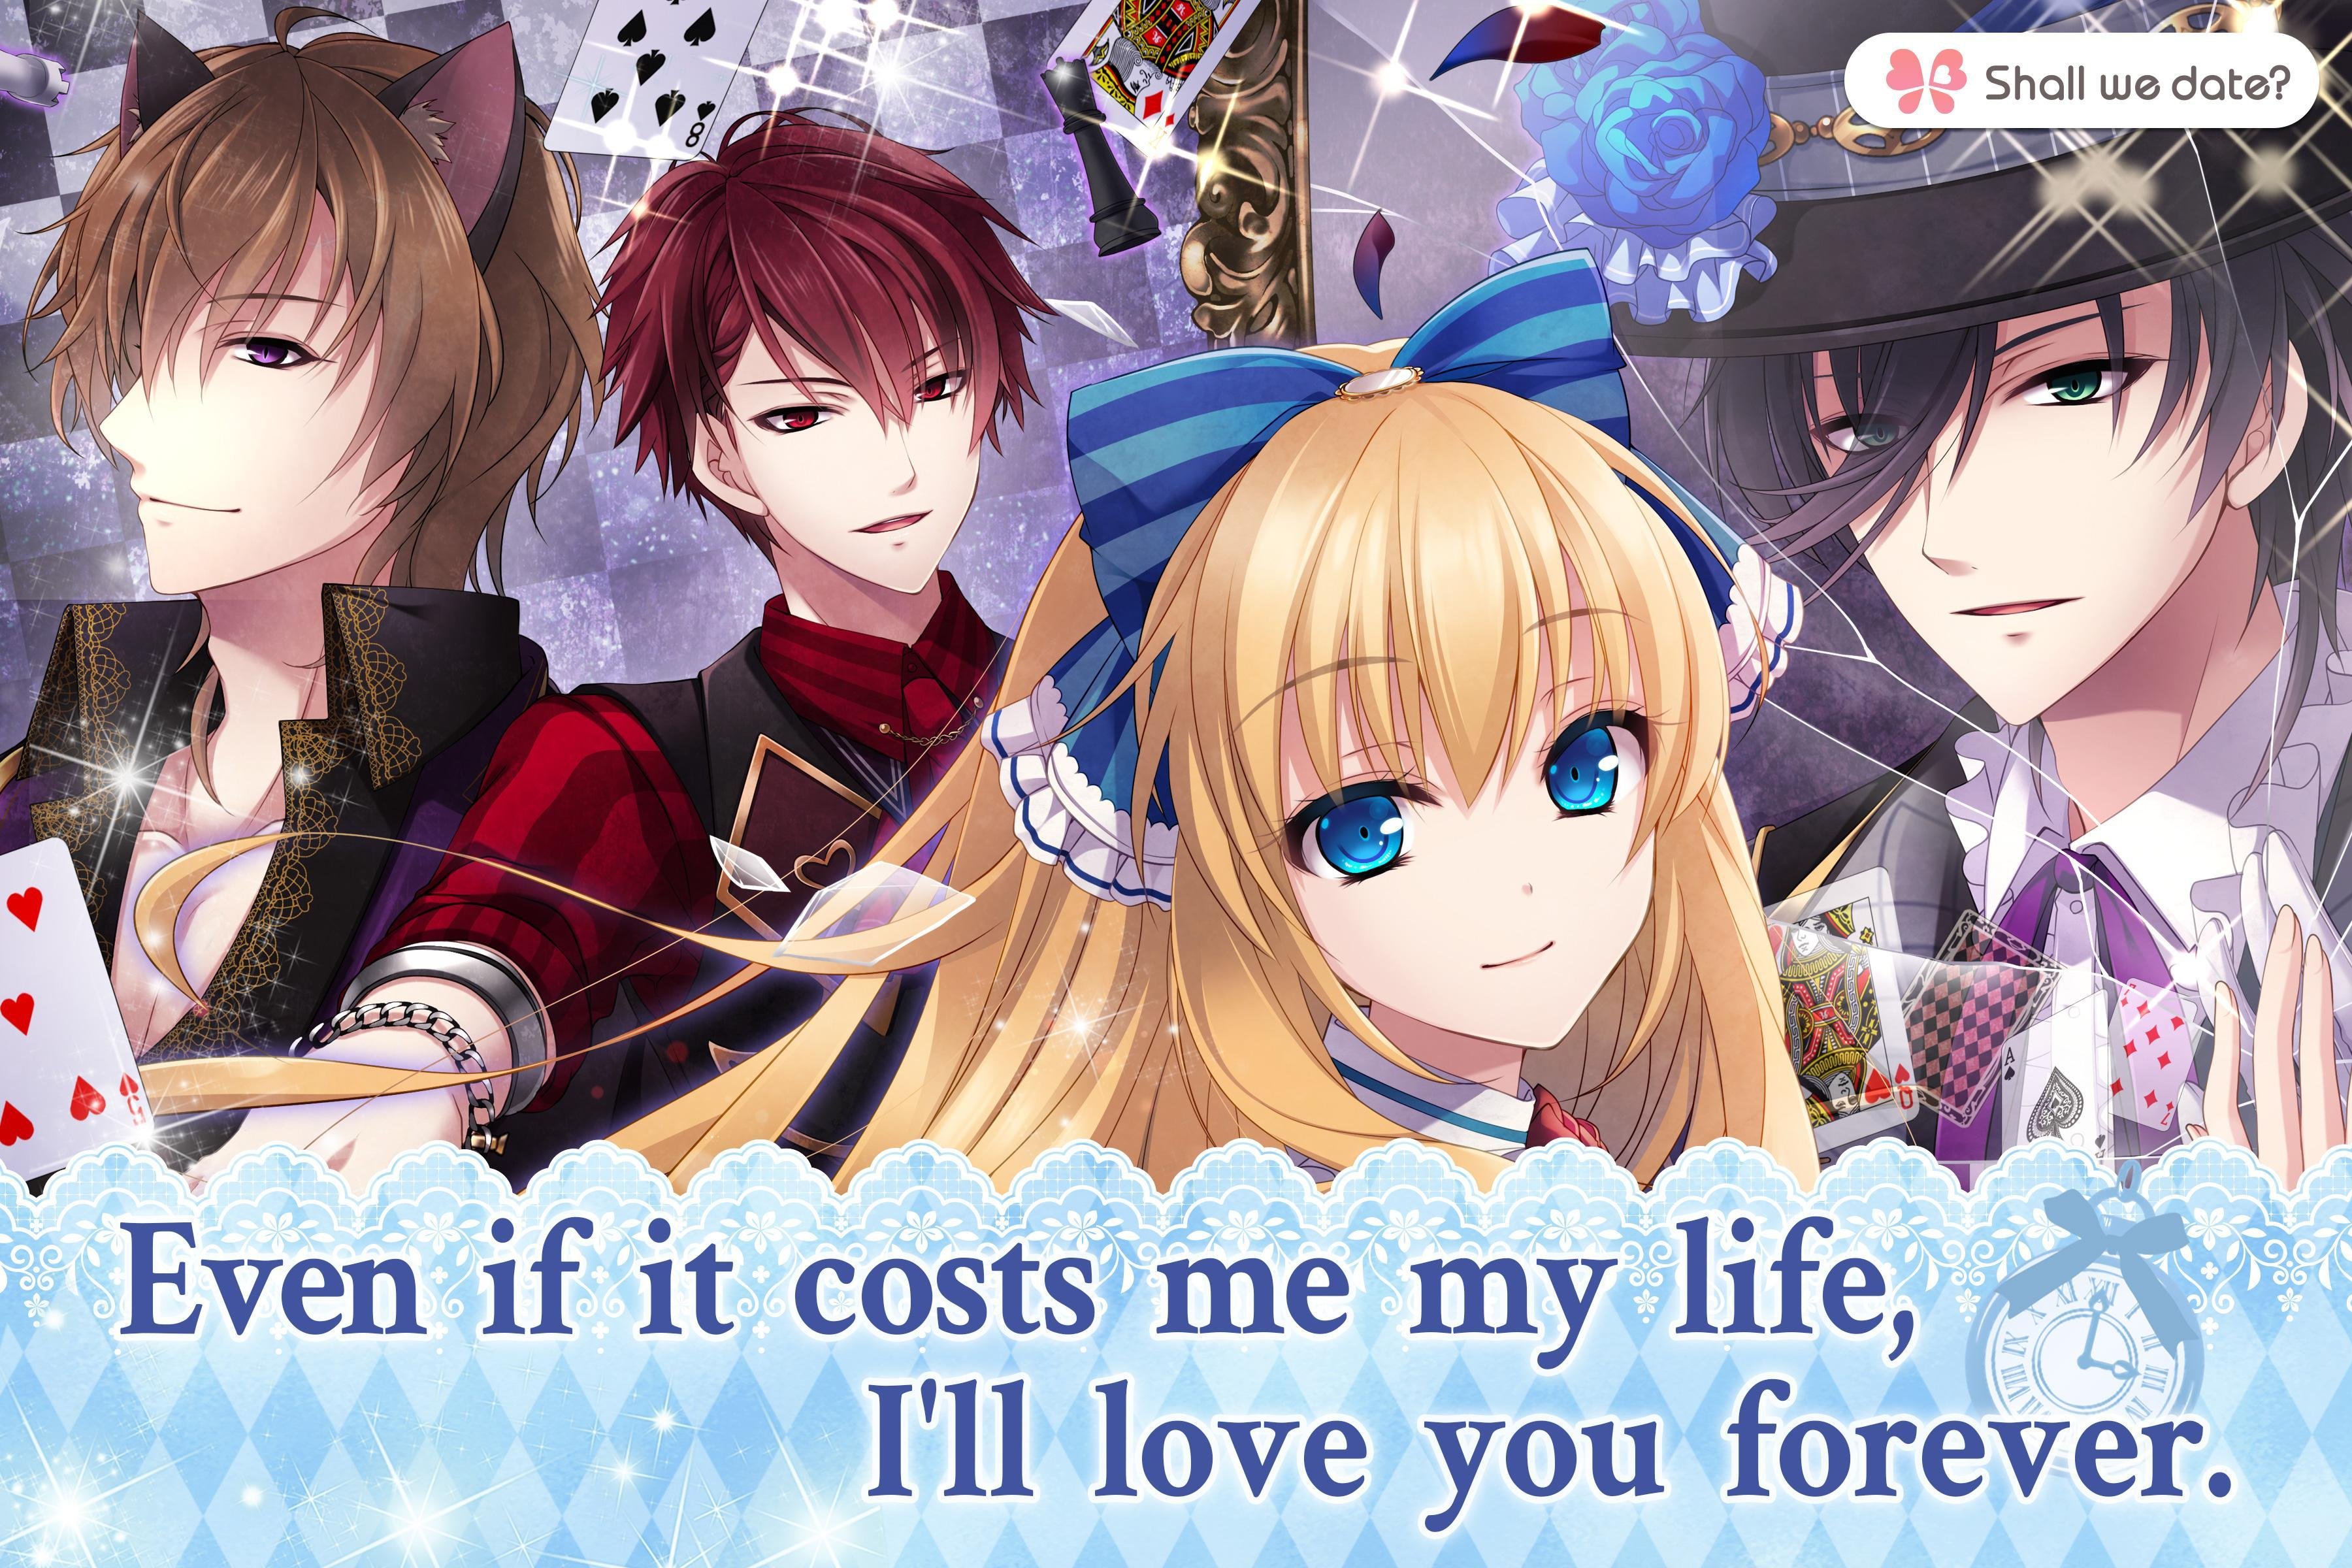 Lost Alice - otome game/dating sim #shall we date 1.5.1 Screenshot 21